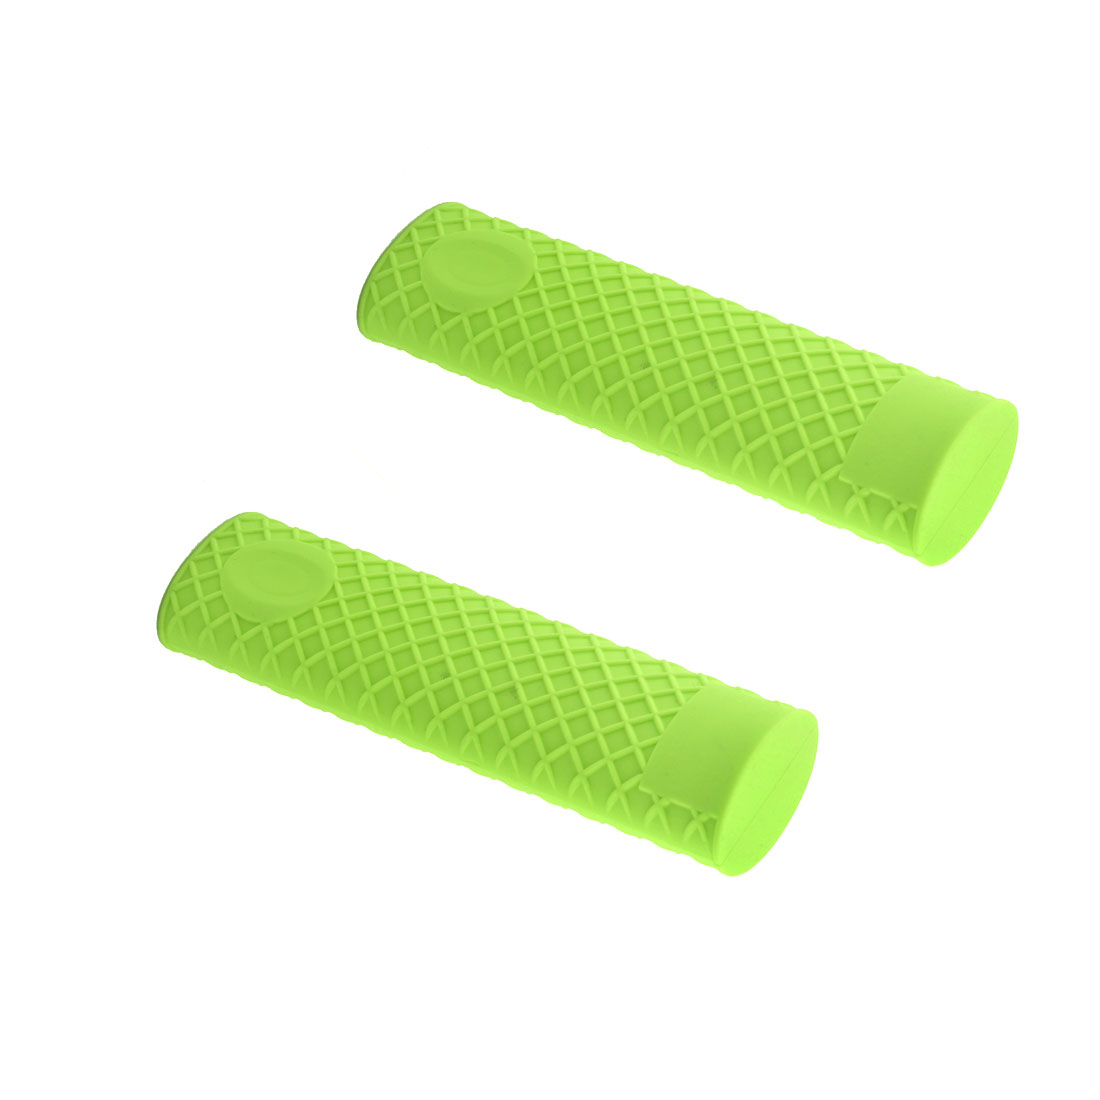 Kitchen Heat Resistant Silicone Pot Pan Handle Grip Holder Sleeve Cover Green 2pcs